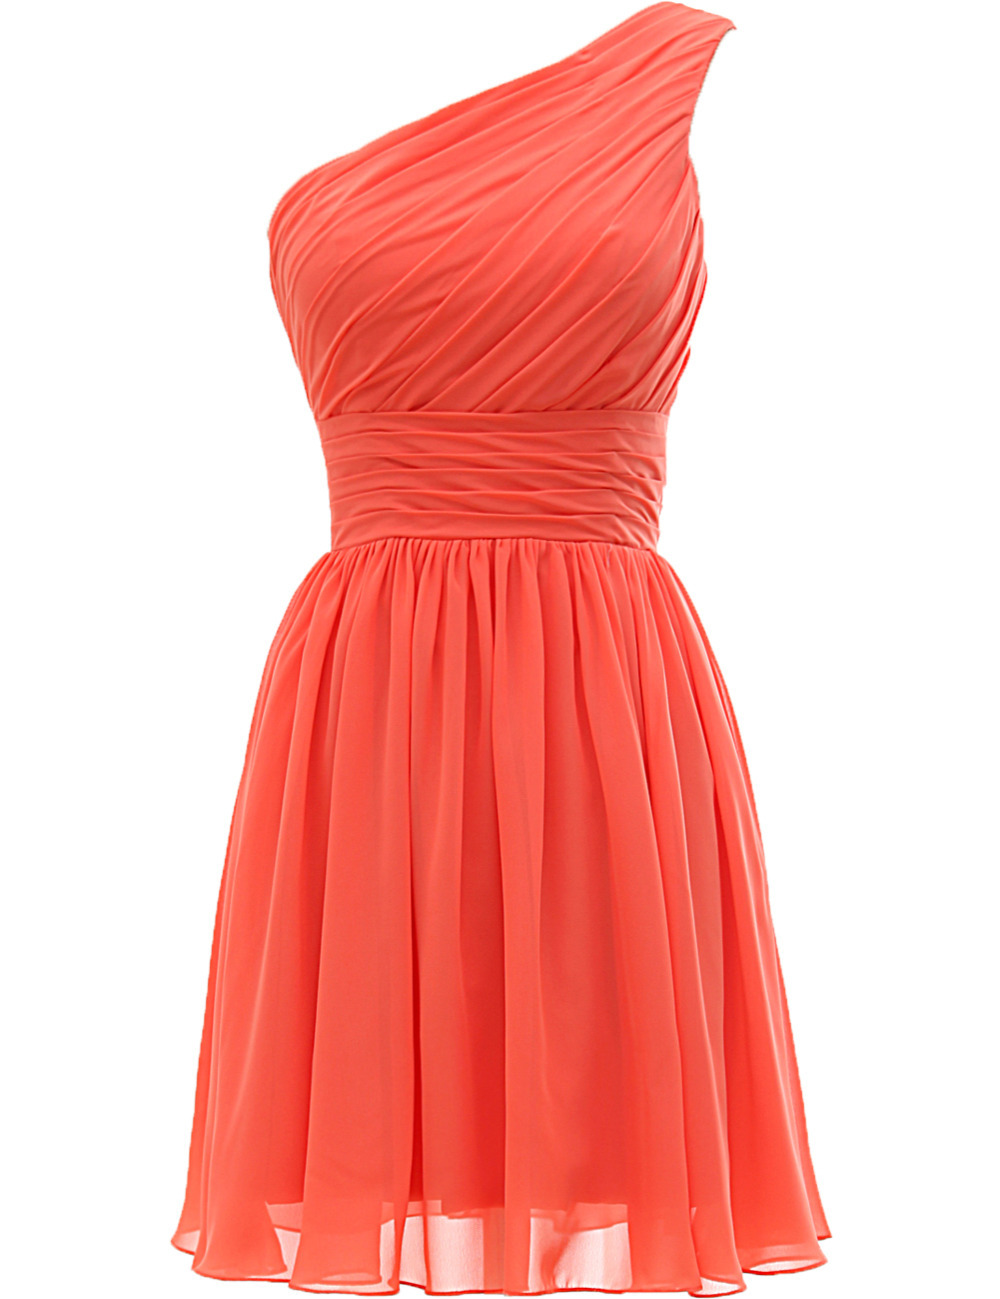 2015 Short Homecoming Dresses Cheap Vintage Simple Dress for Homecoming  Junior Plus Size Graduation Dress for 8th Grade Gown